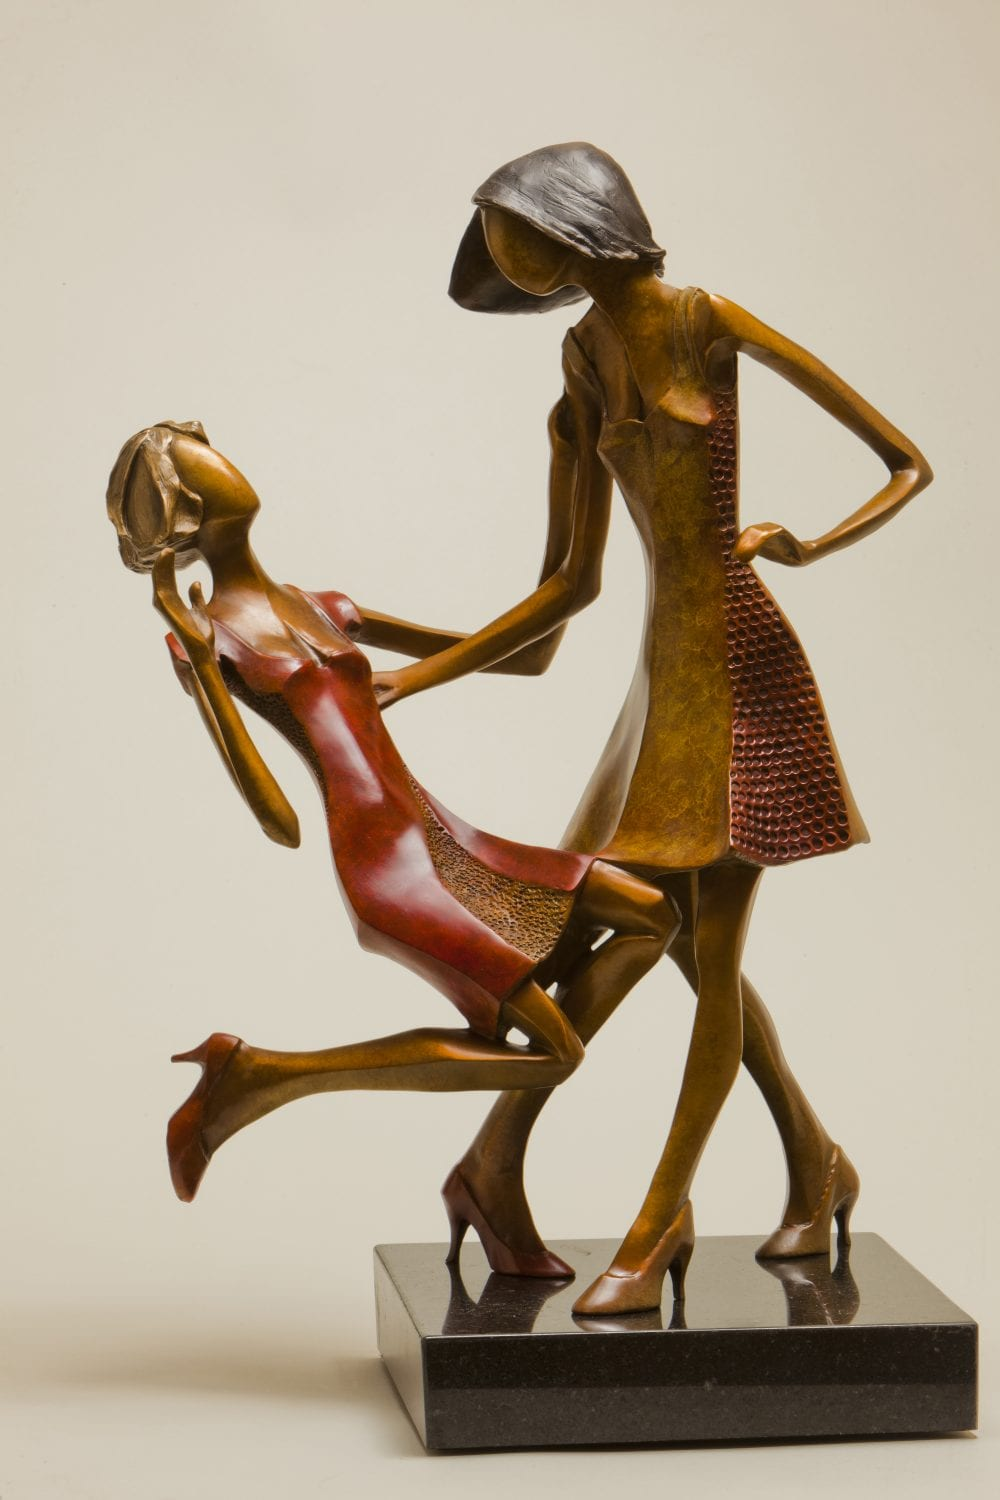 Joyful | Richard Pankratz | Sculpture-Exposures International Gallery of Fine Art - Sedona AZ